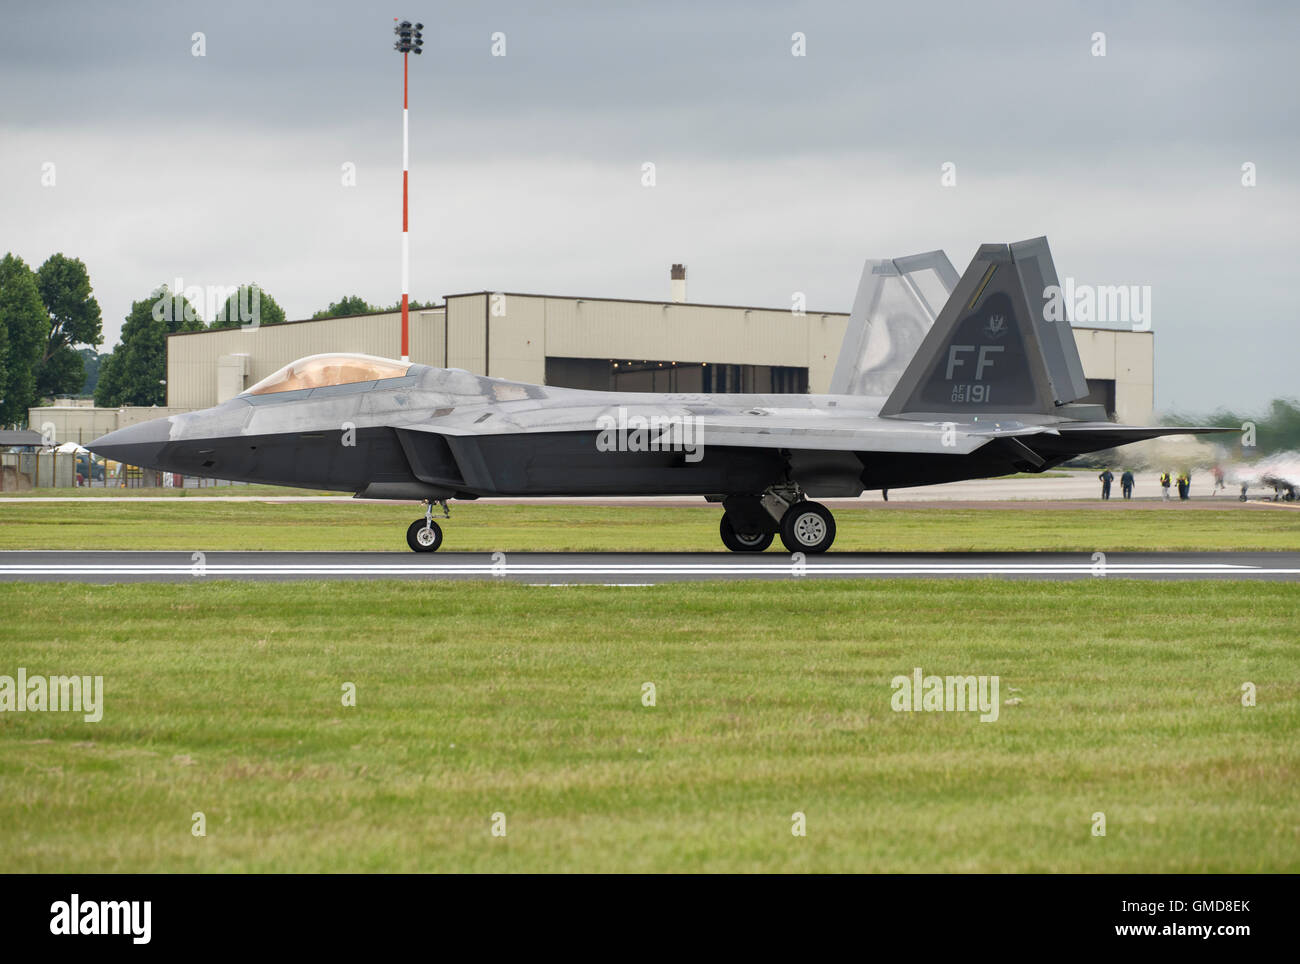 F119 Stock Photos Images Alamy F 22 Raptor Engine Diagram A Lockheed Martin Stealth Fighter Waits On The Runway At Fairford Just